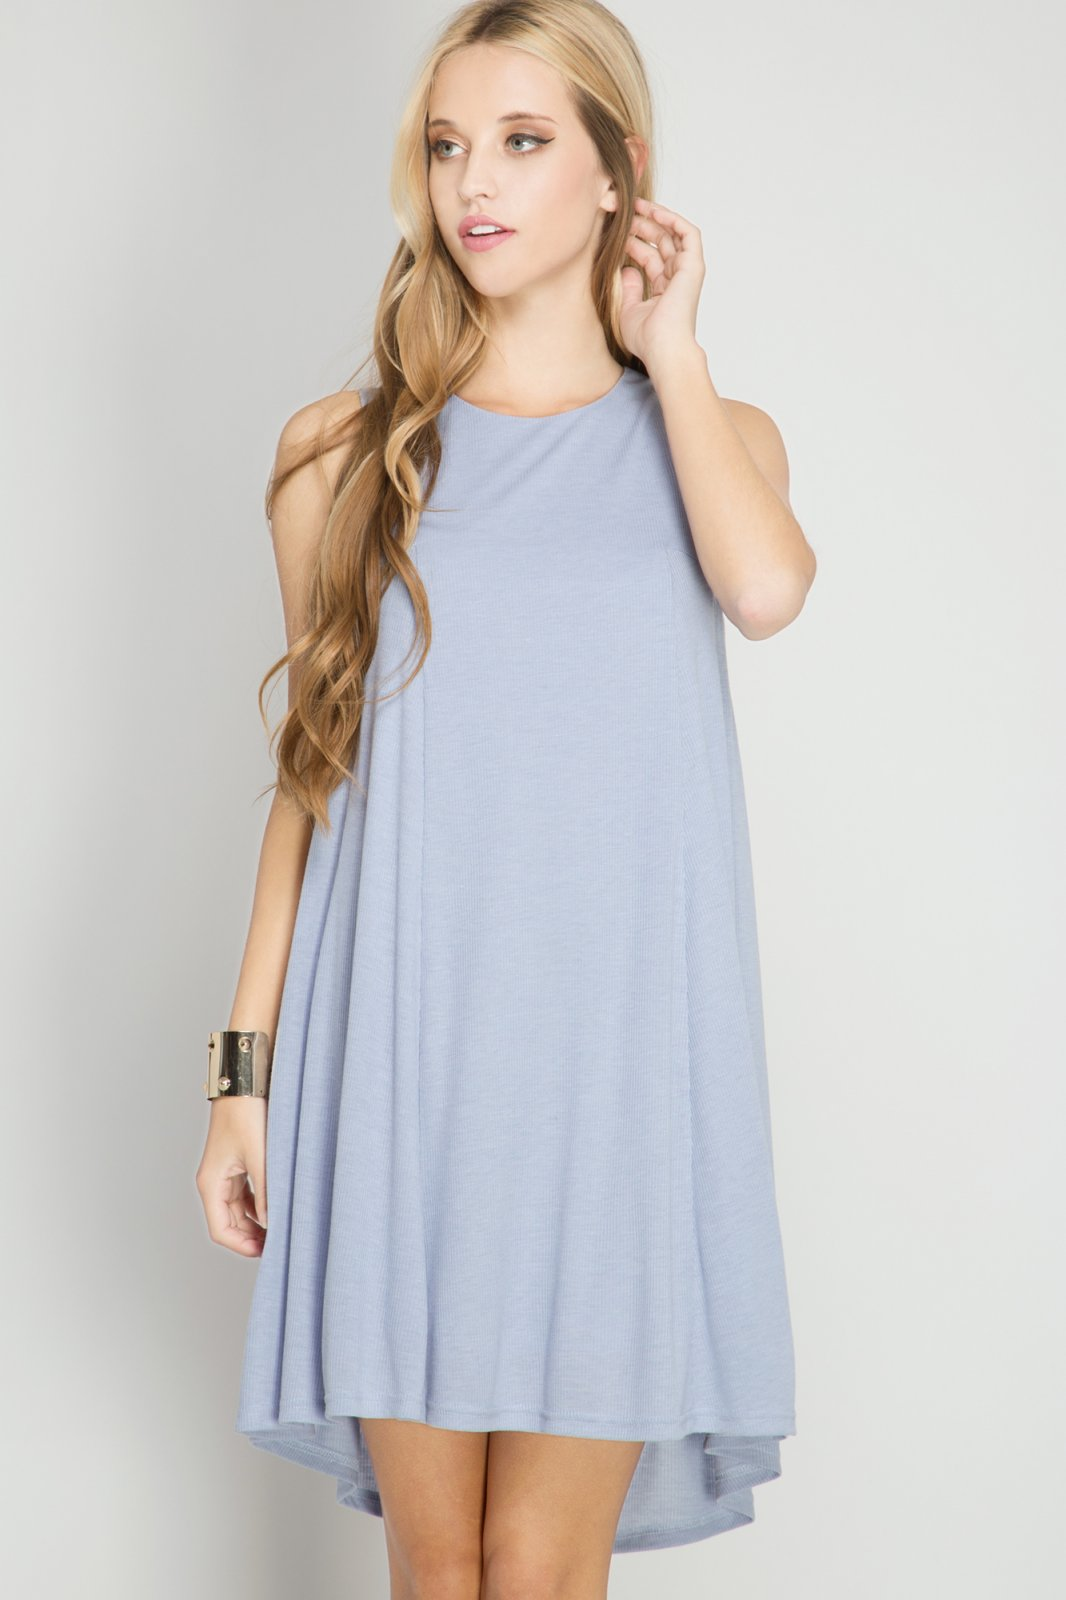 DRESS Ribbed Shift * Jr / Ms / Adult PT MISTY BLUE